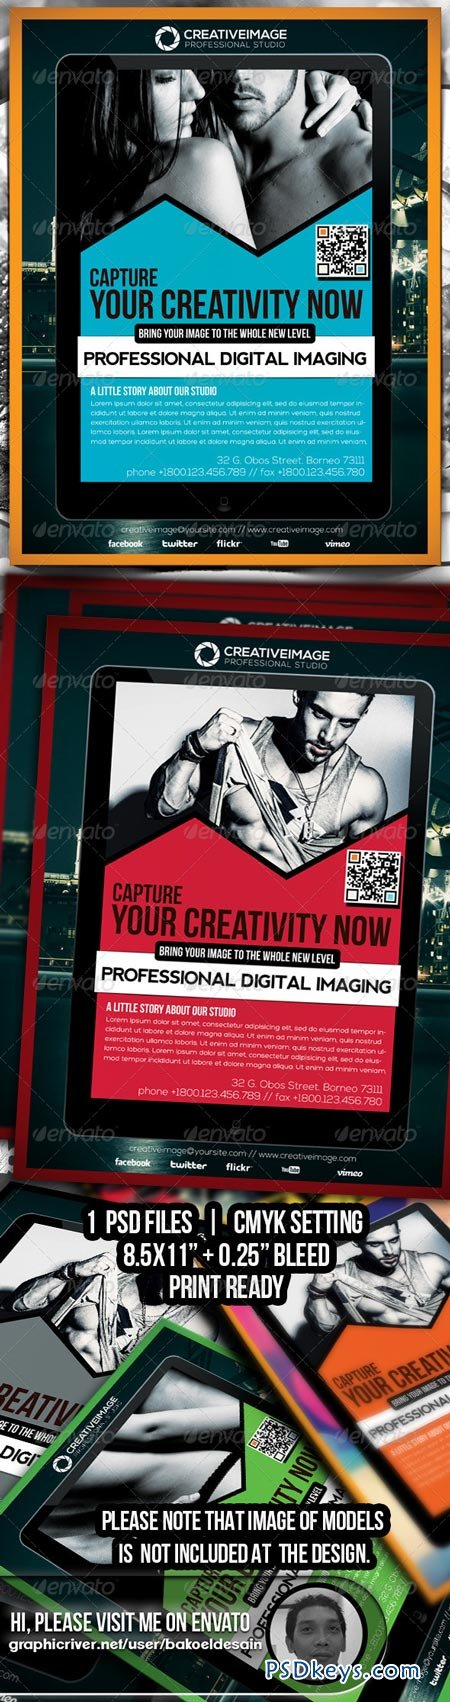 Creative Image Studio Flyer 6898187